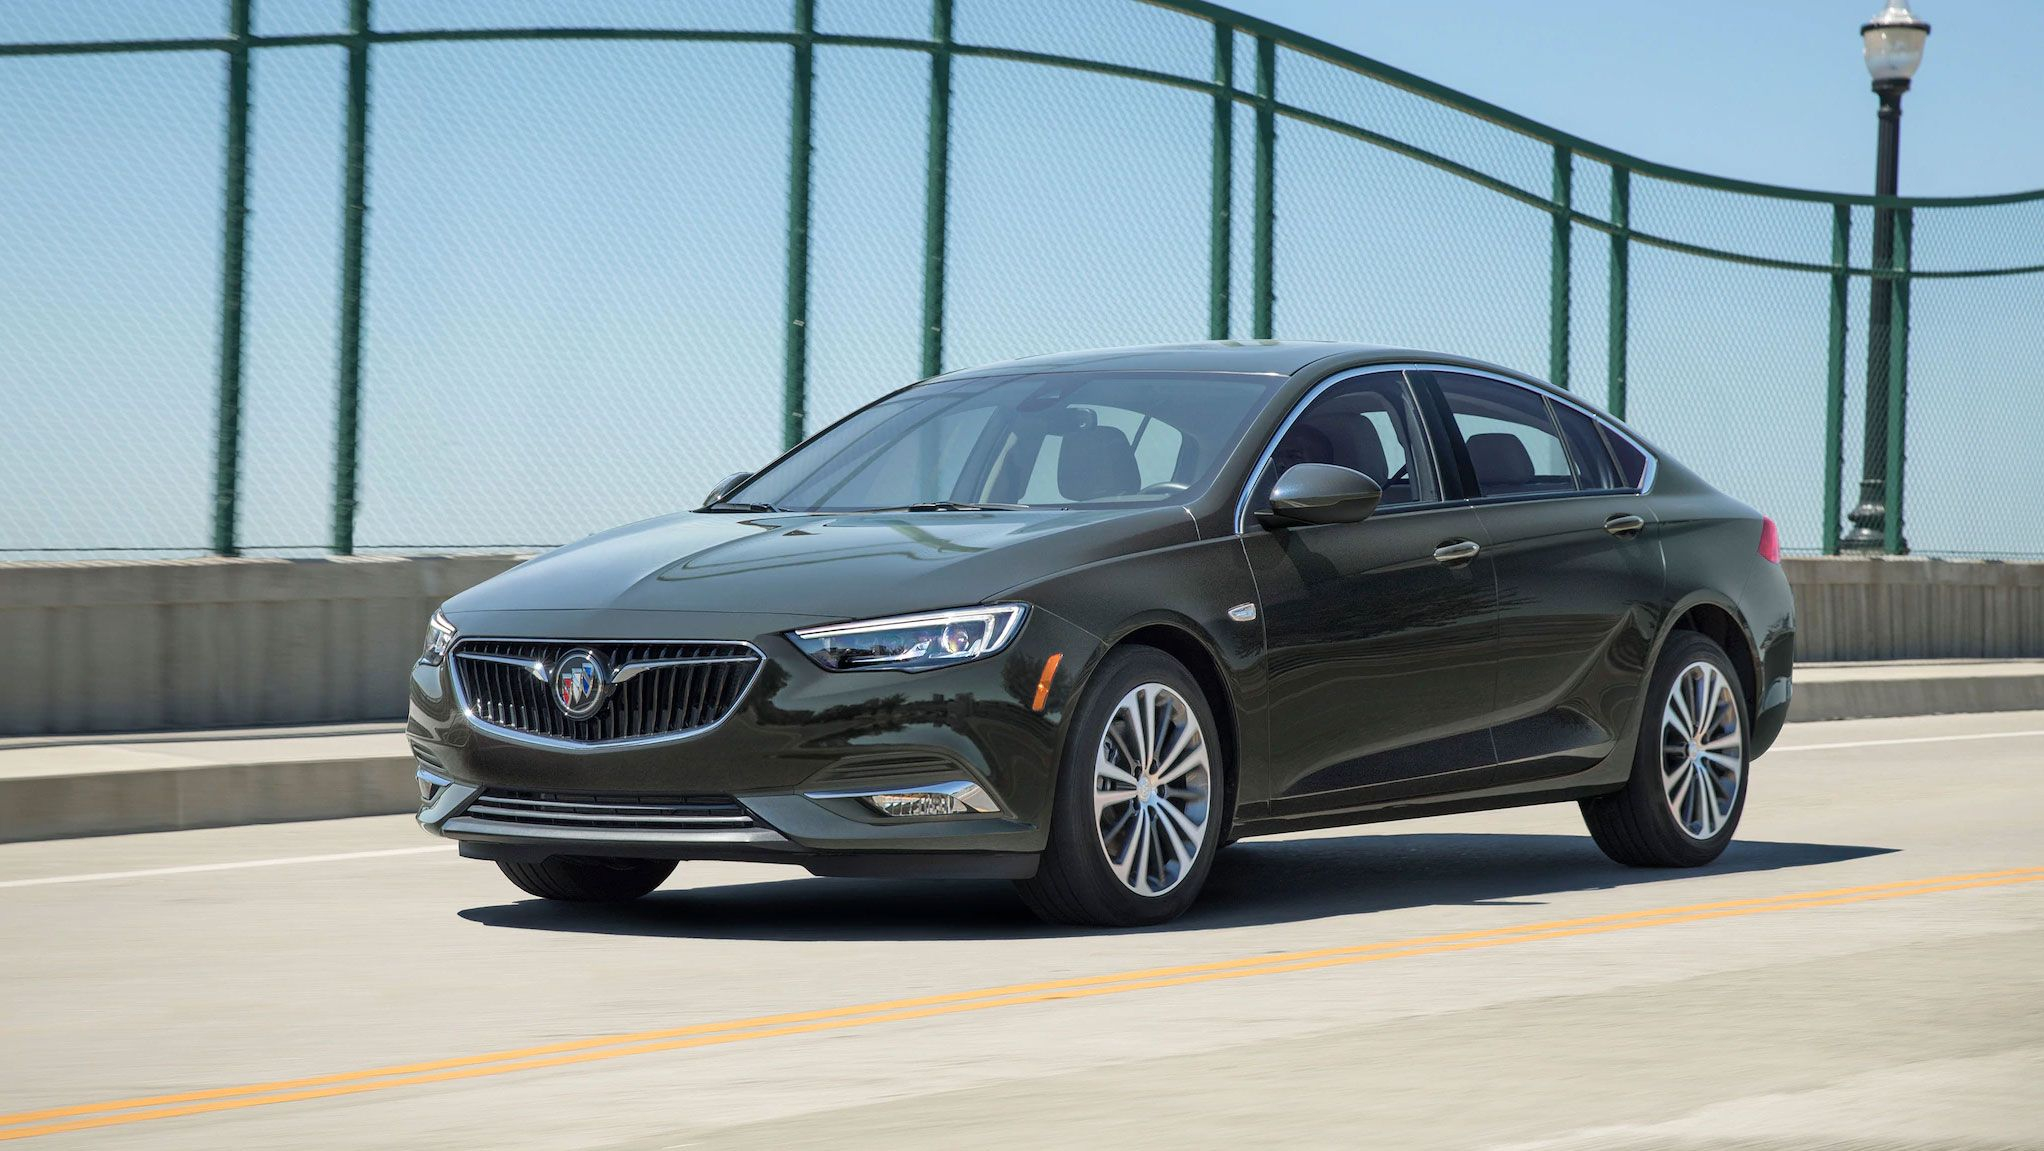 2020 Buick Regal Sportback Review, Pricing, And Specs New 2021 Buick Regal Awd, Dimensions, Price